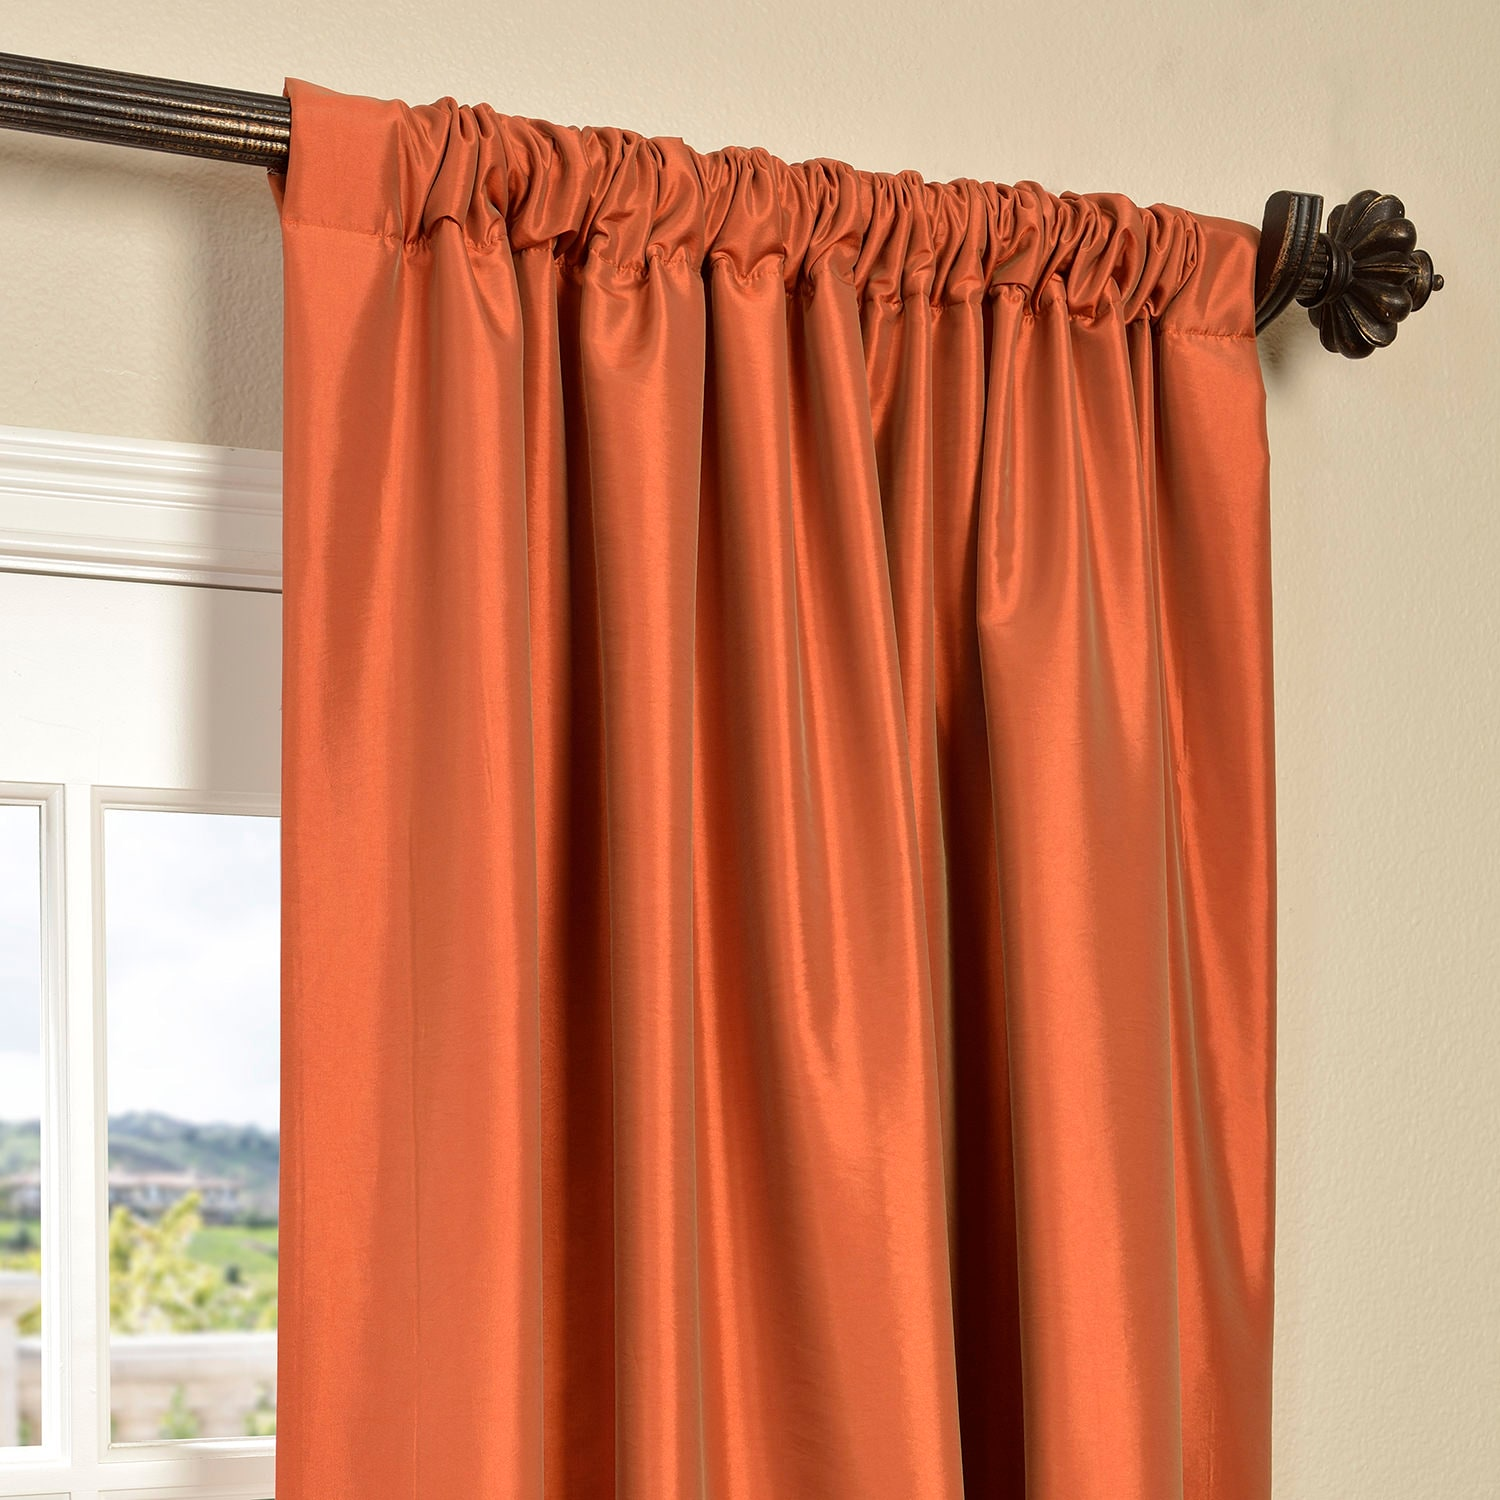 Harvest Orange Faux Silk Taffeta Curtain